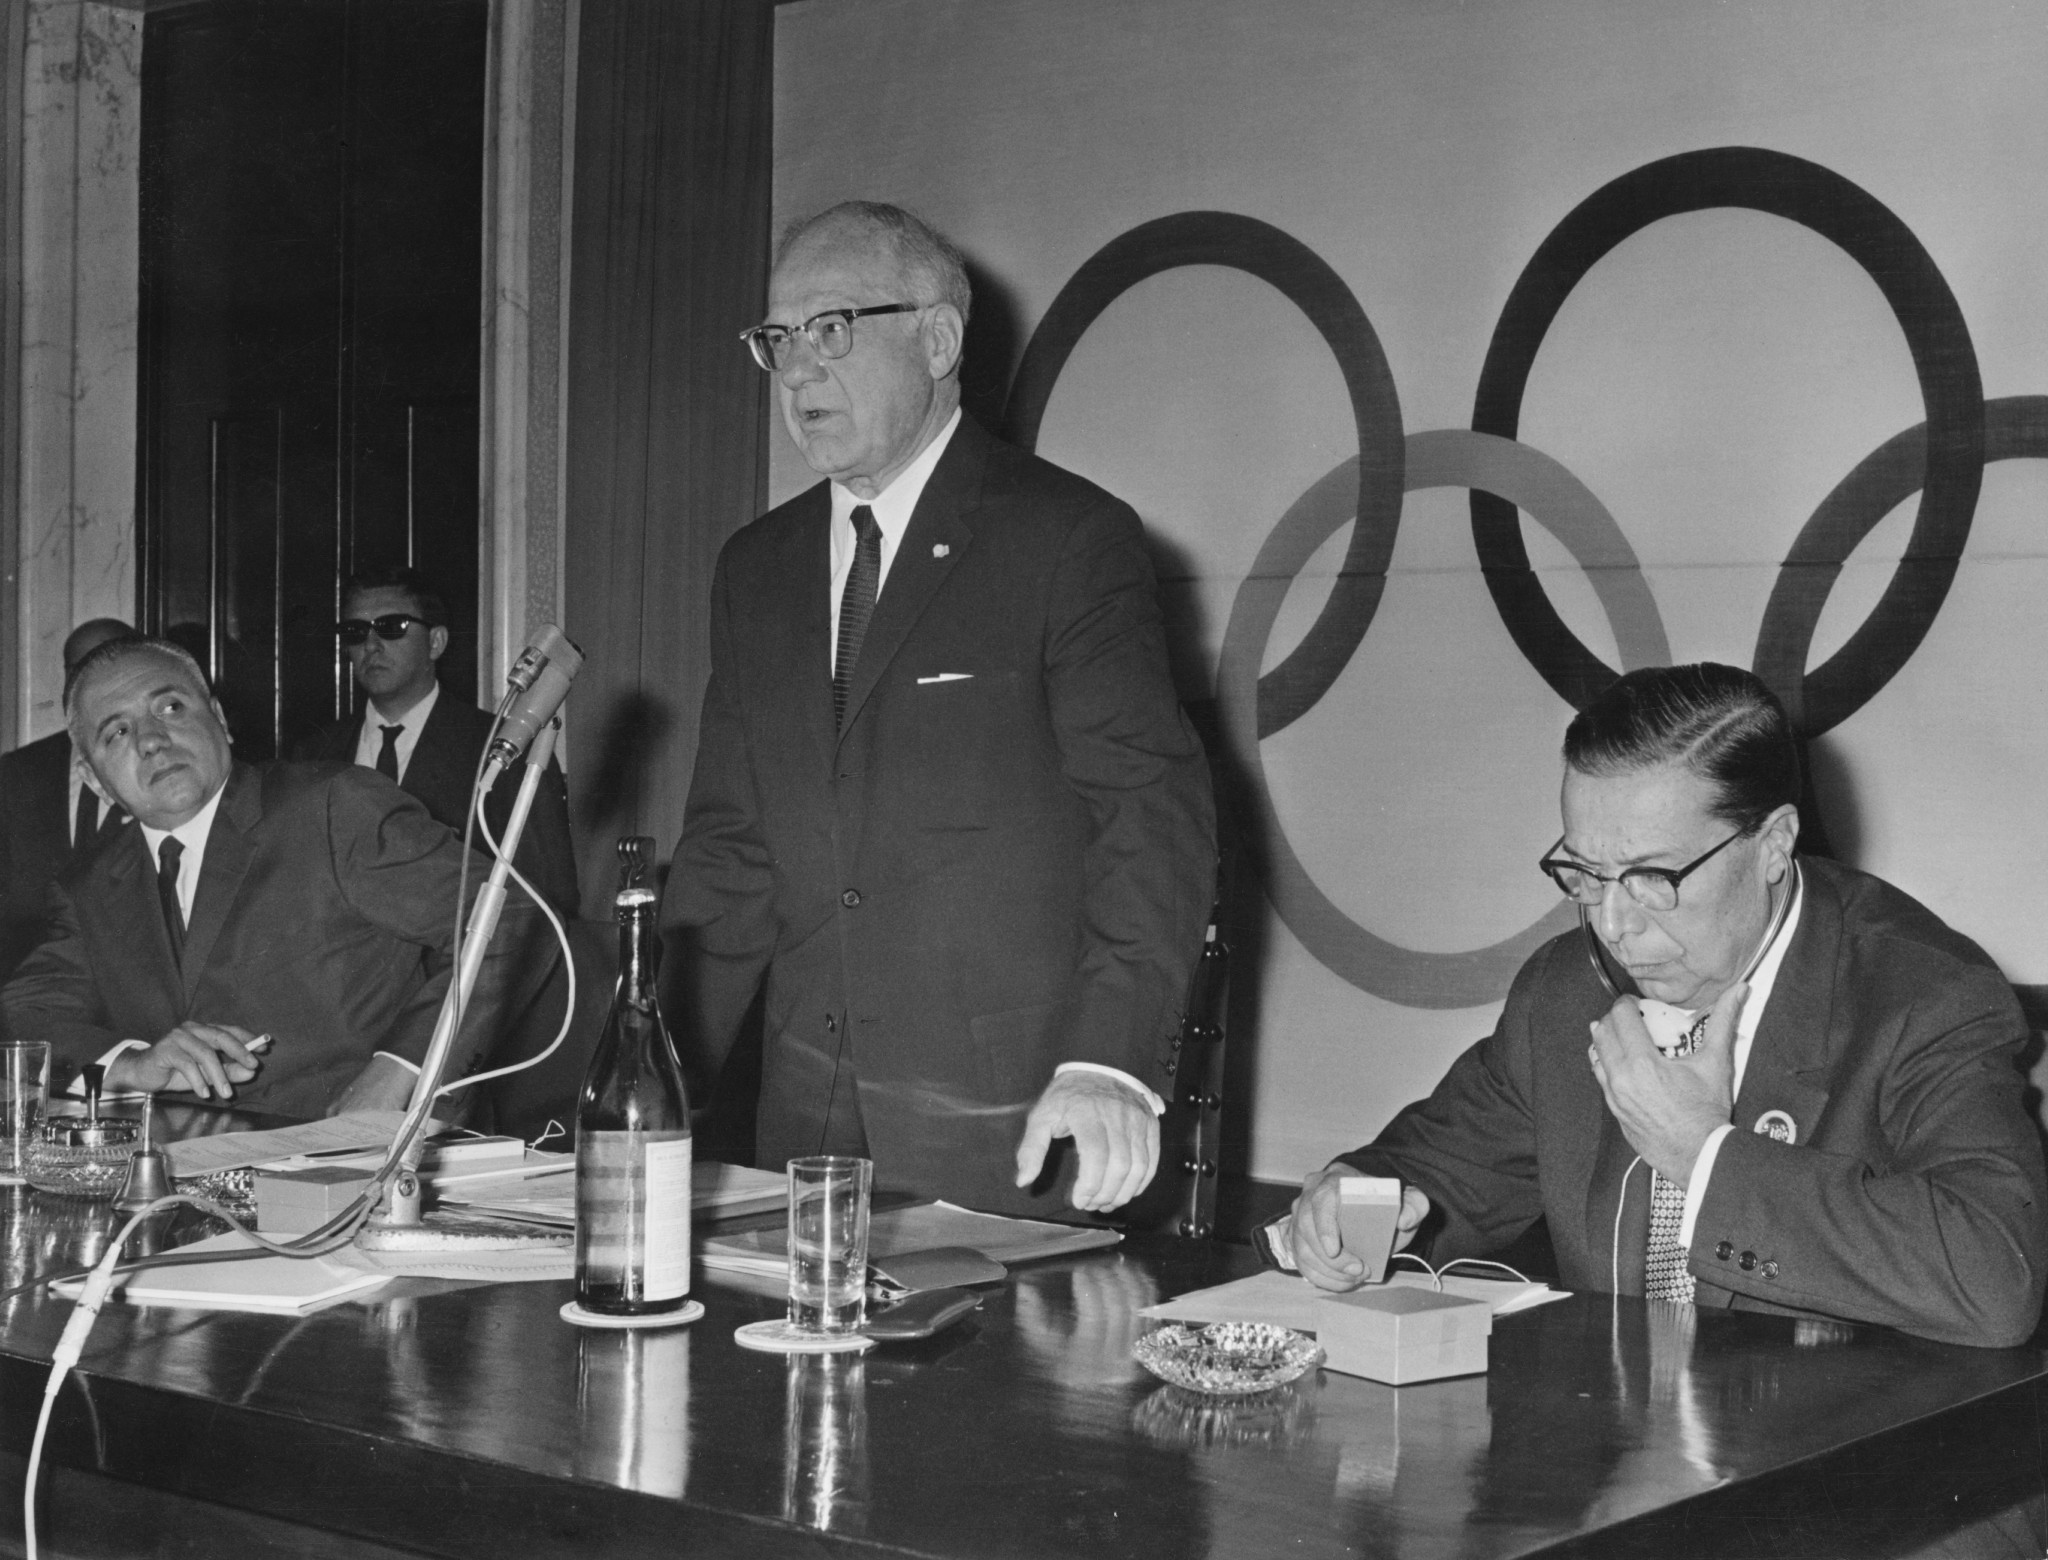 CANOC President calls for IOC to rescind life bans issued to athletes 48 years after podium protests